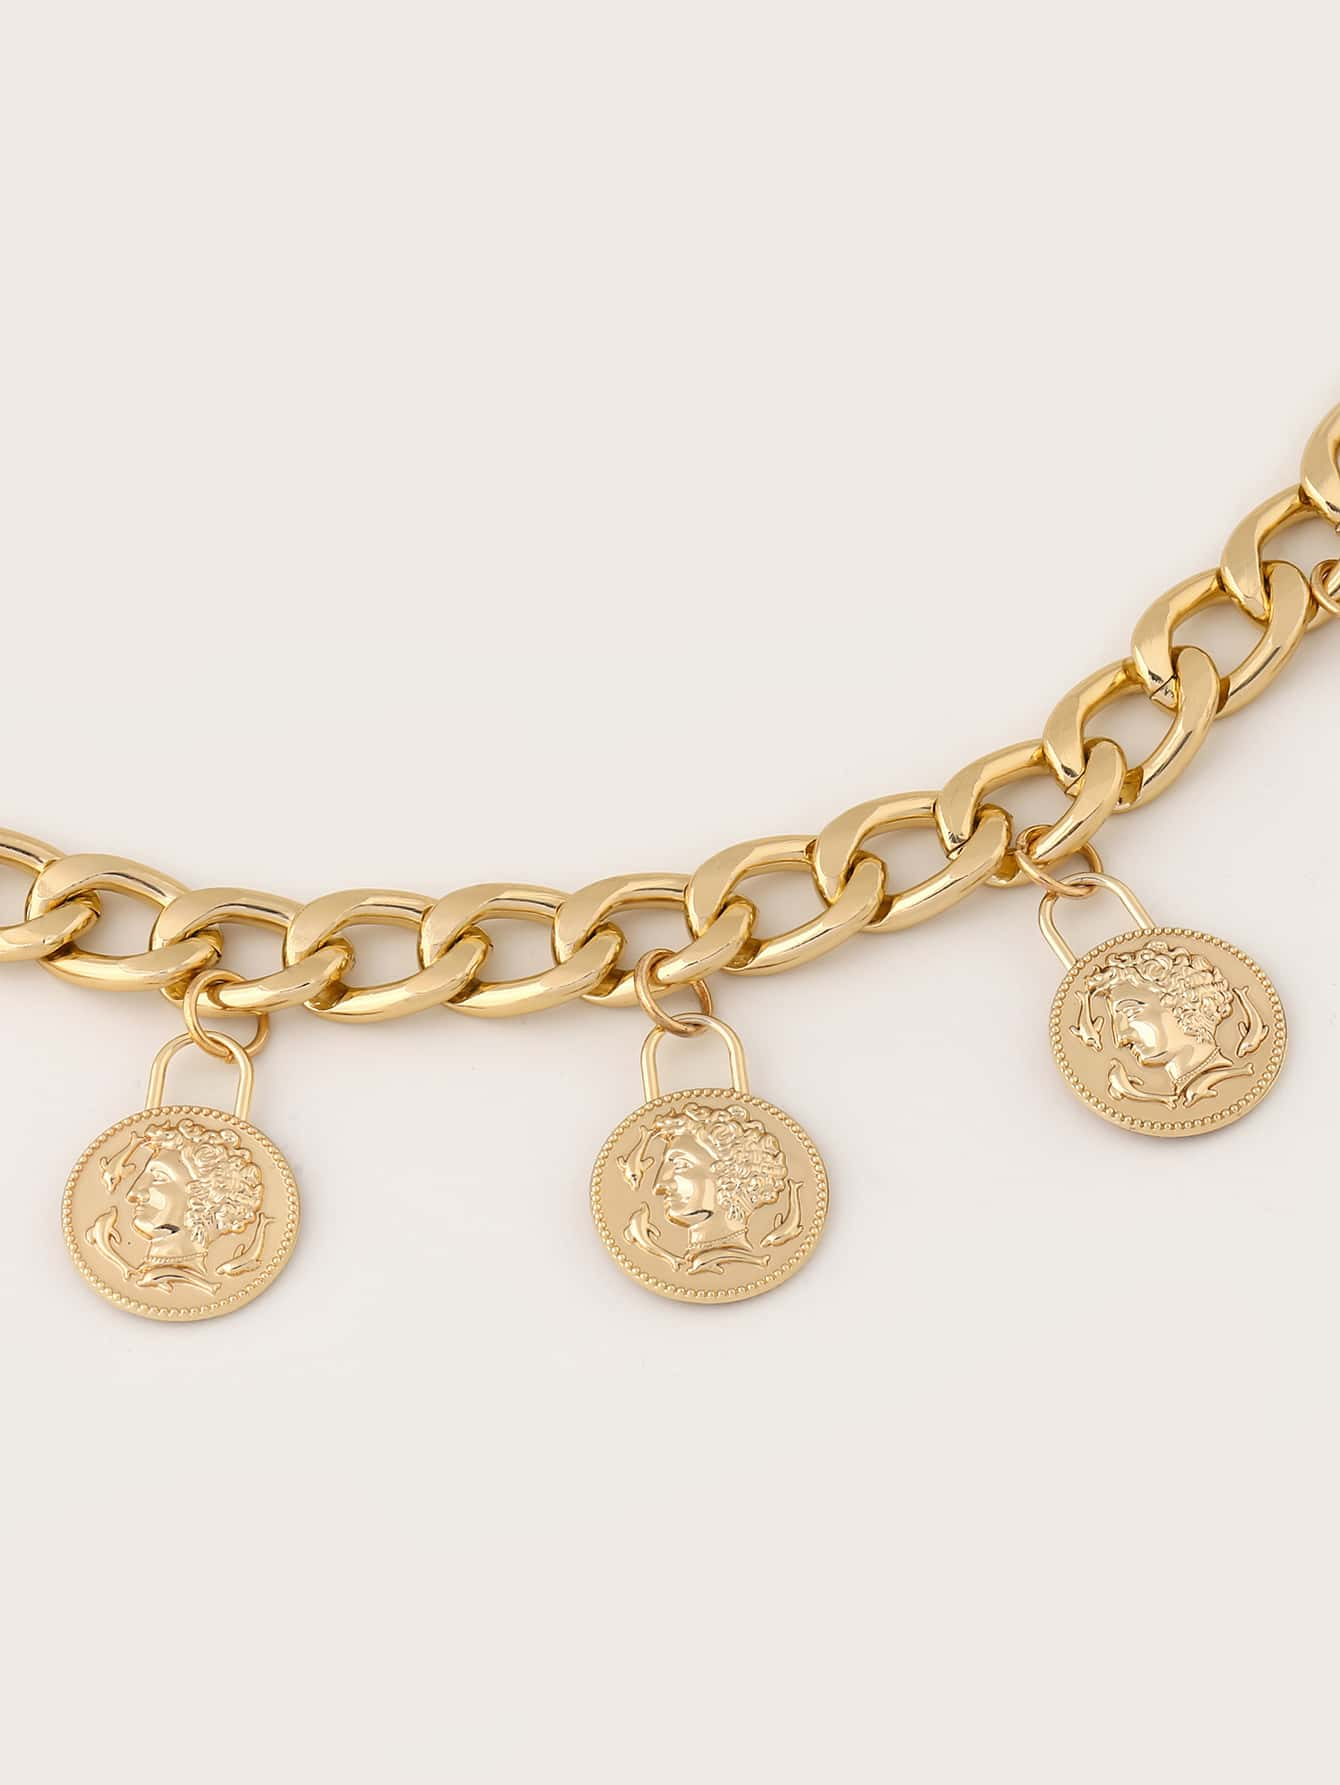 Coin Charm Layered Chain Belt - FLJ CORPORATIONS